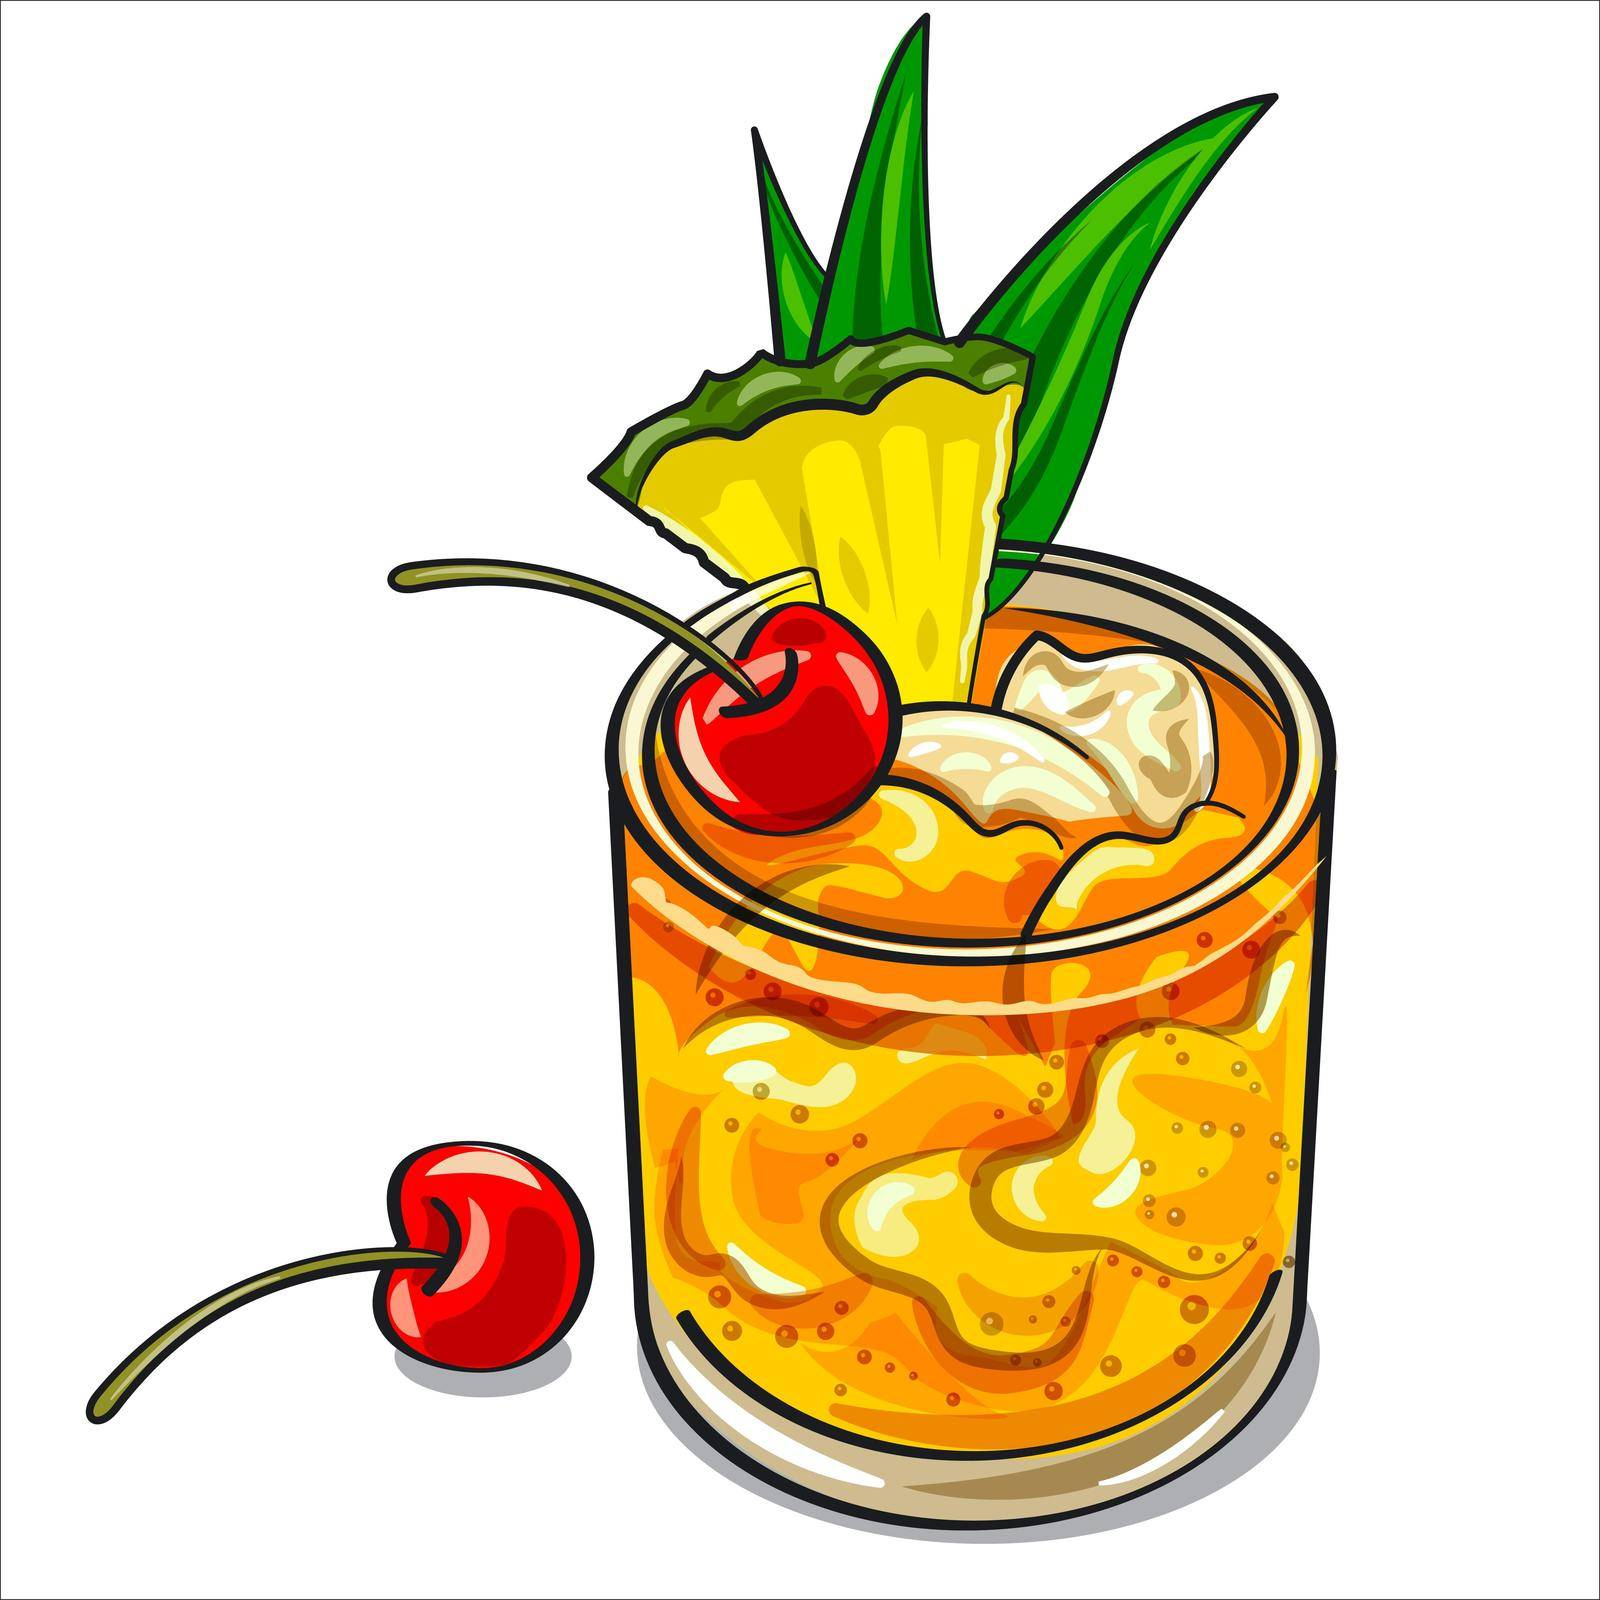 Illustration of the Mai Tai cocktail with ice and pineapple